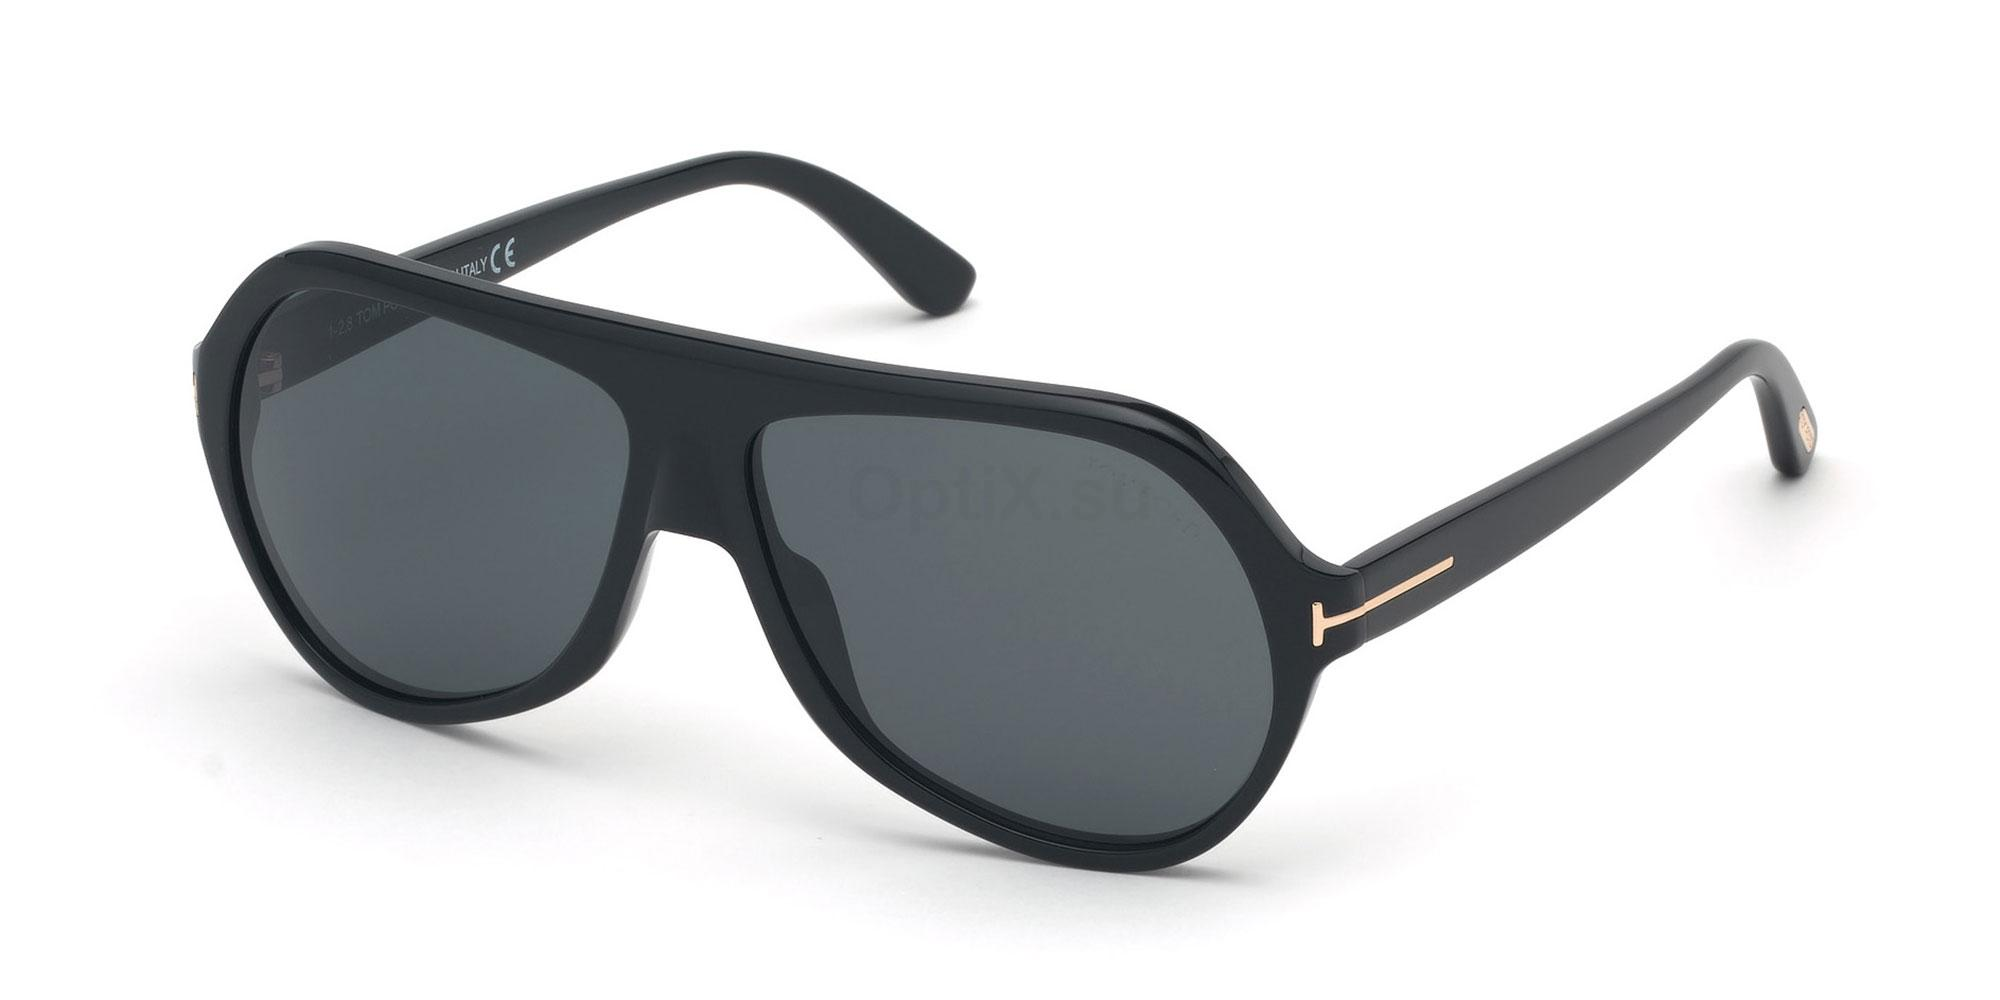 01A FT0732 Sunglasses, Tom Ford